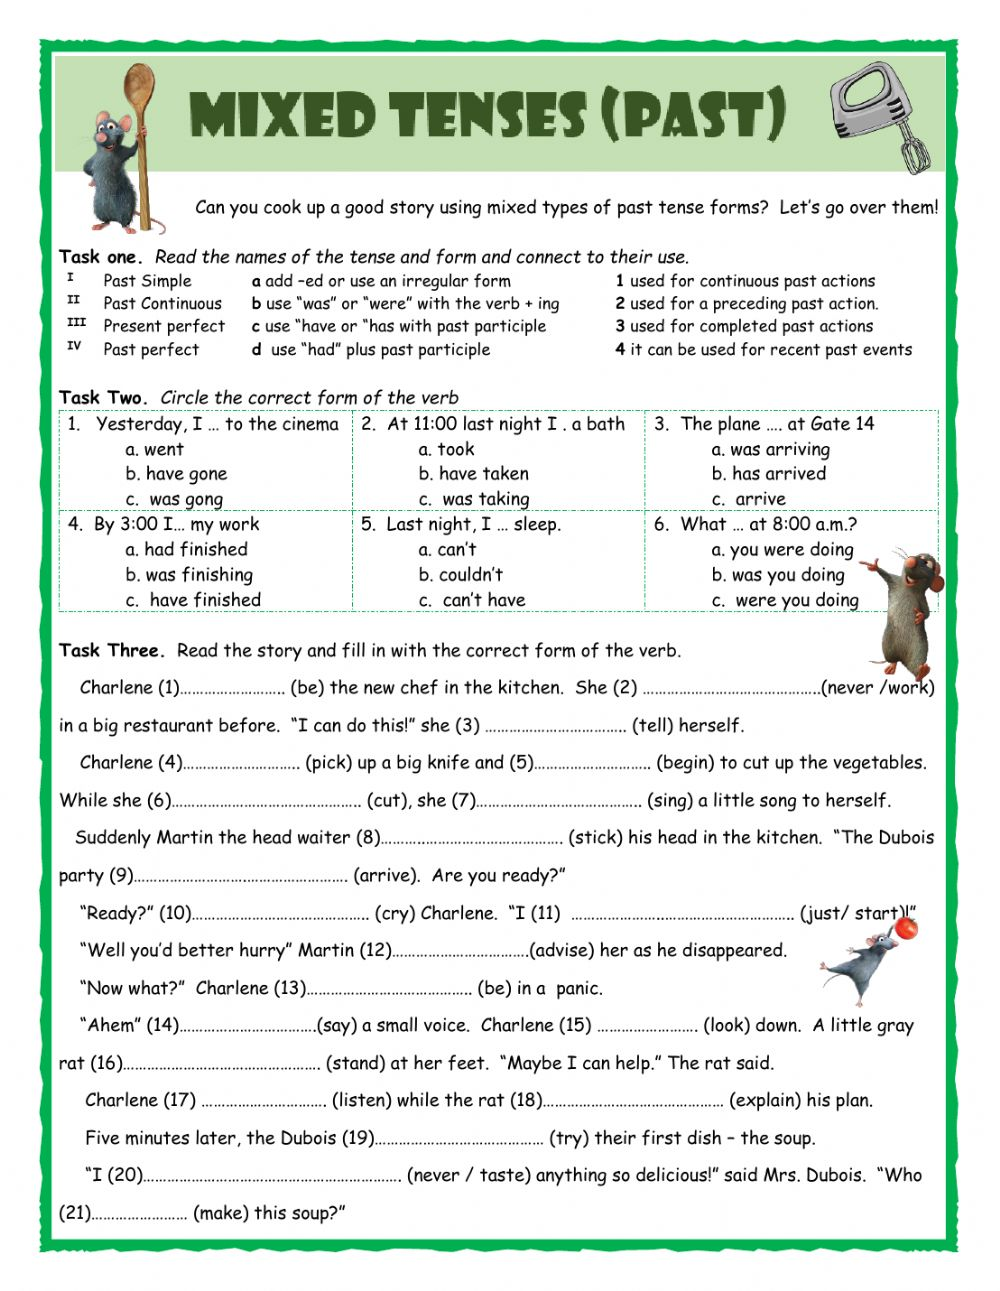 Mixed Tenses (Past) - Interactive worksheet